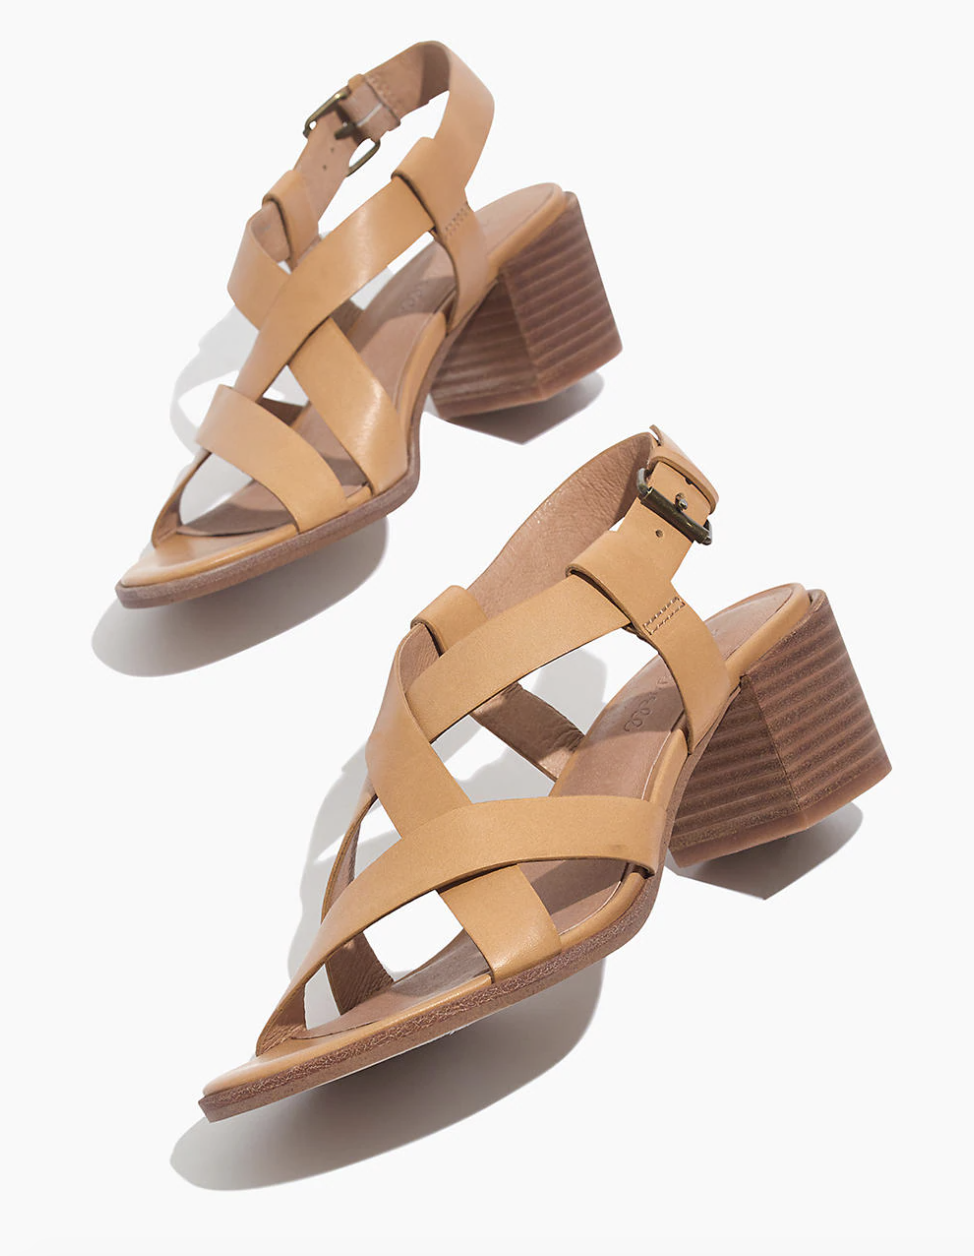 tan heels with criss-crossed straps and a chunky wooden block heel